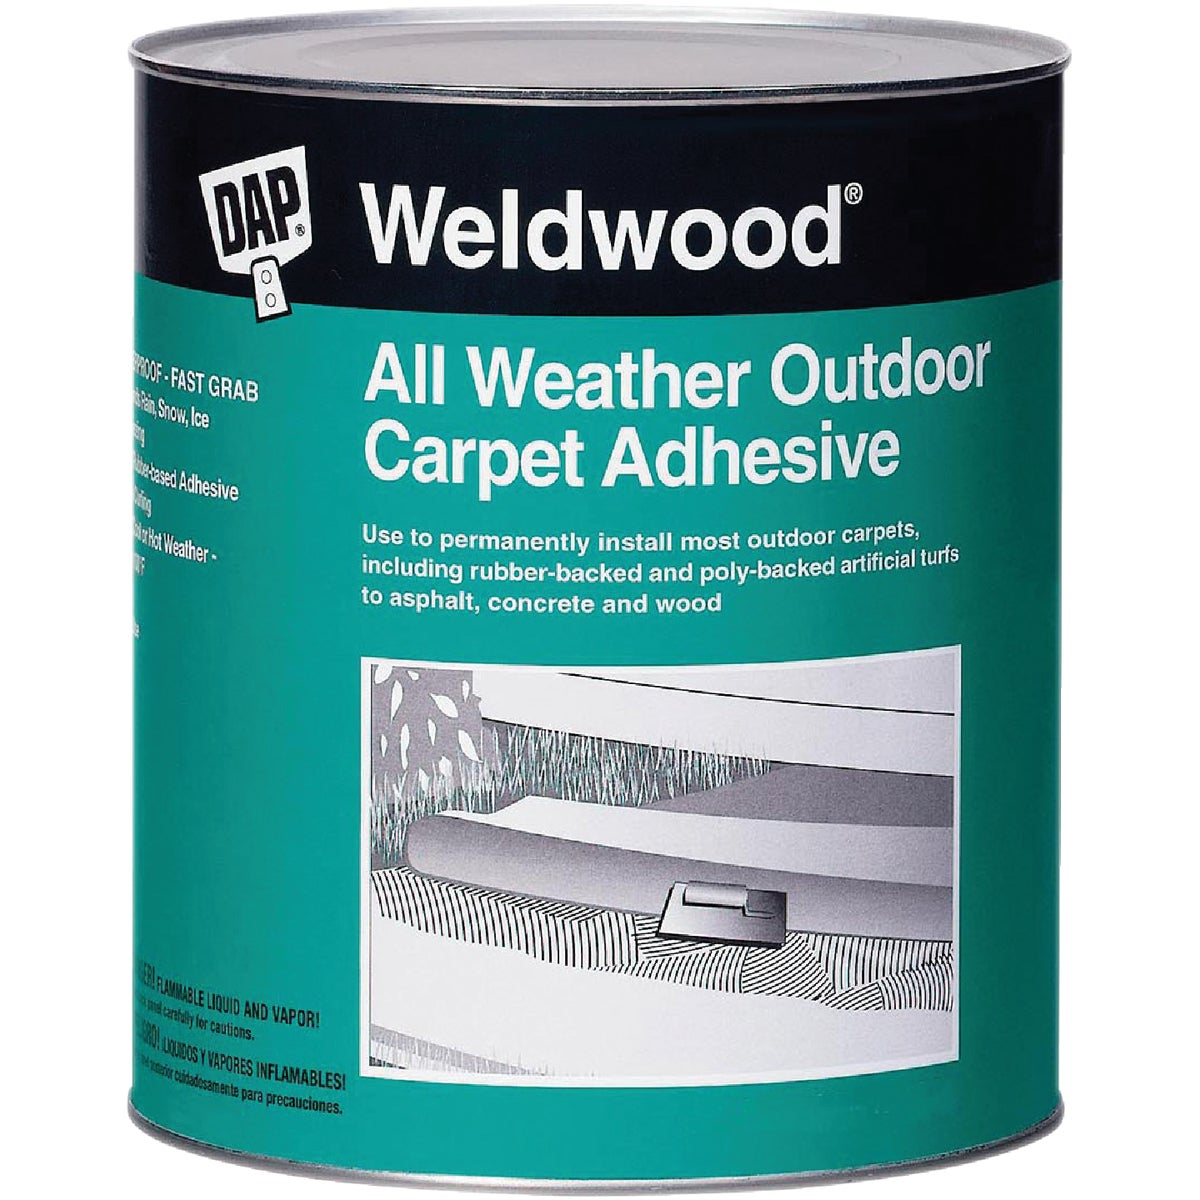 QT OUTDR CARPET ADHESIVE - 00442 by Dap Inc